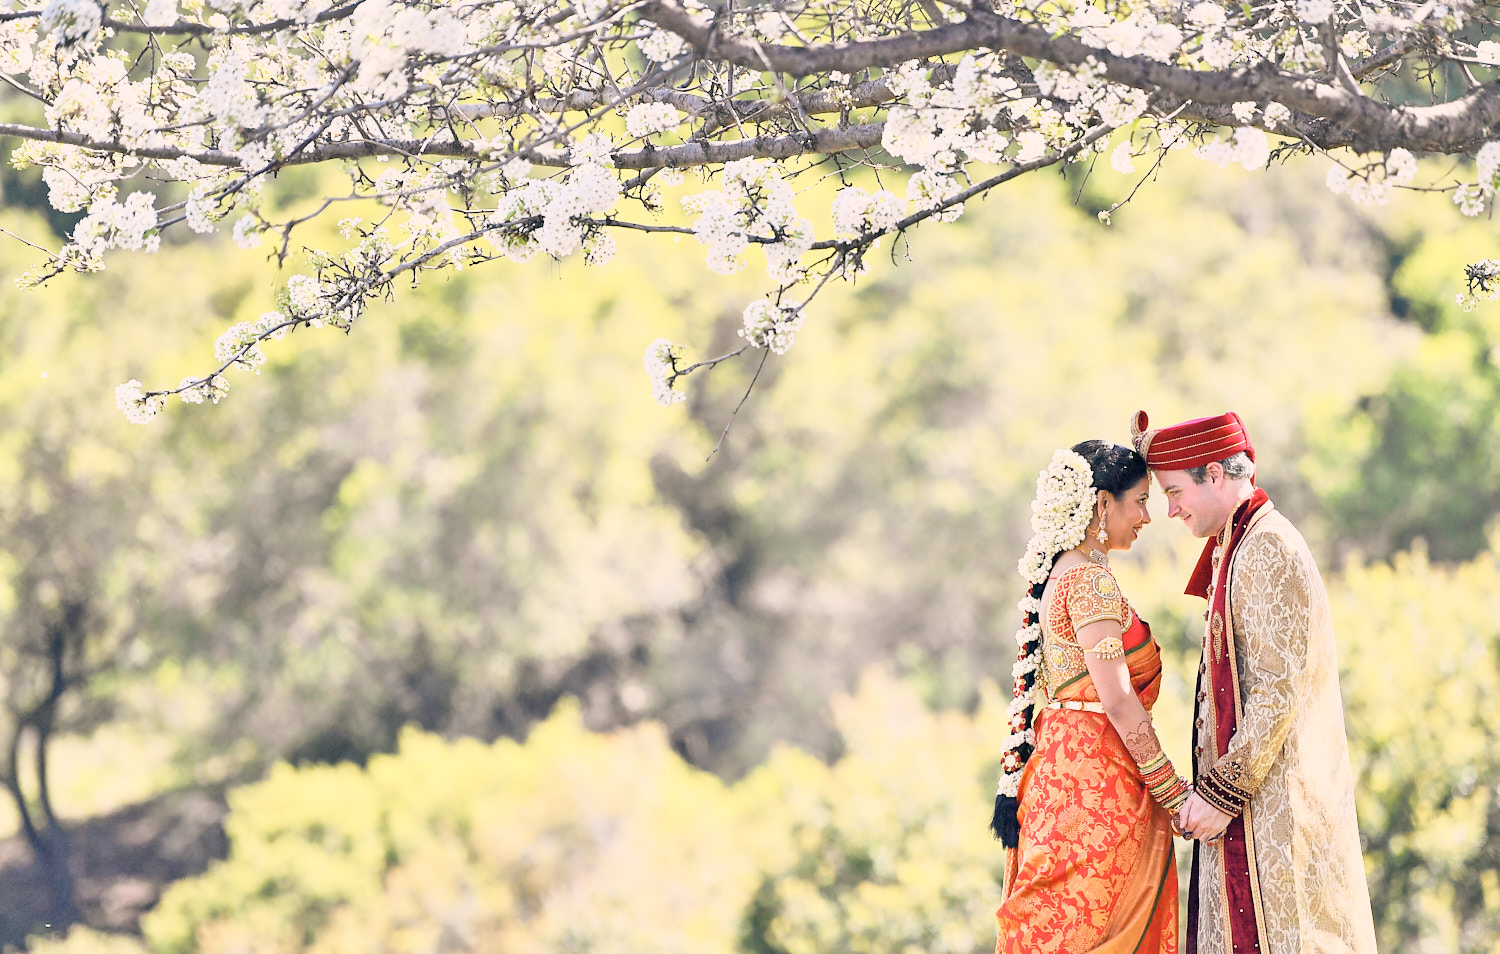 South Indian Bride & American Groom Photography in Saratoga.